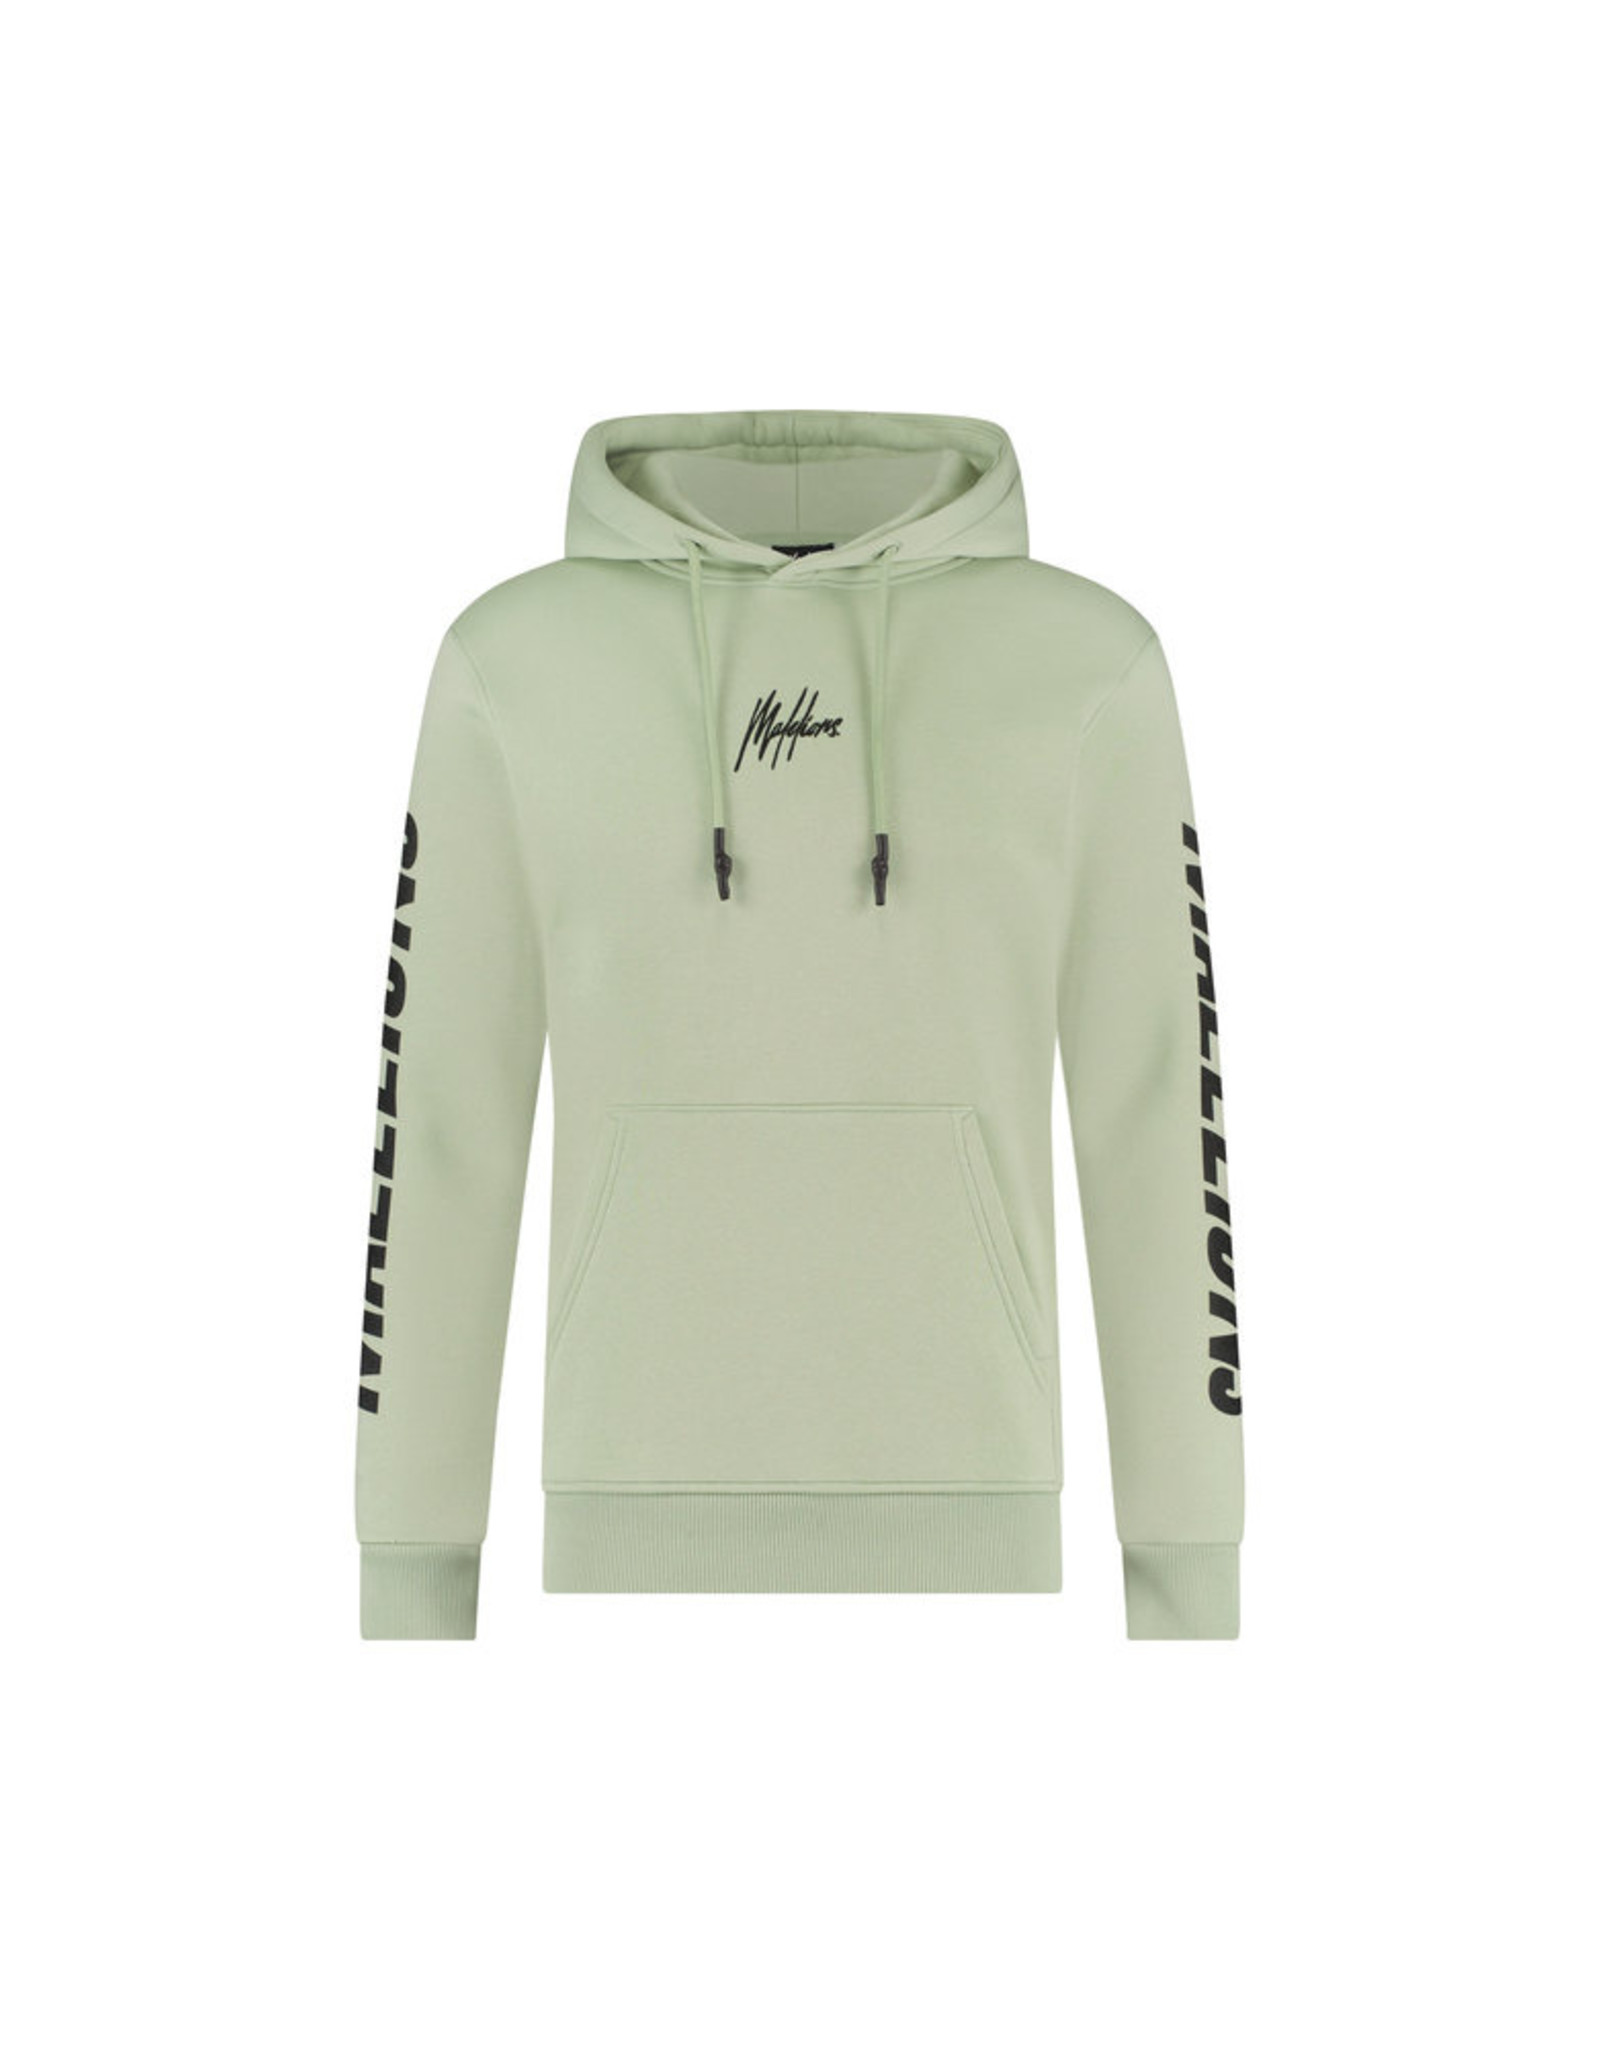 Malelions Lective Hoodie